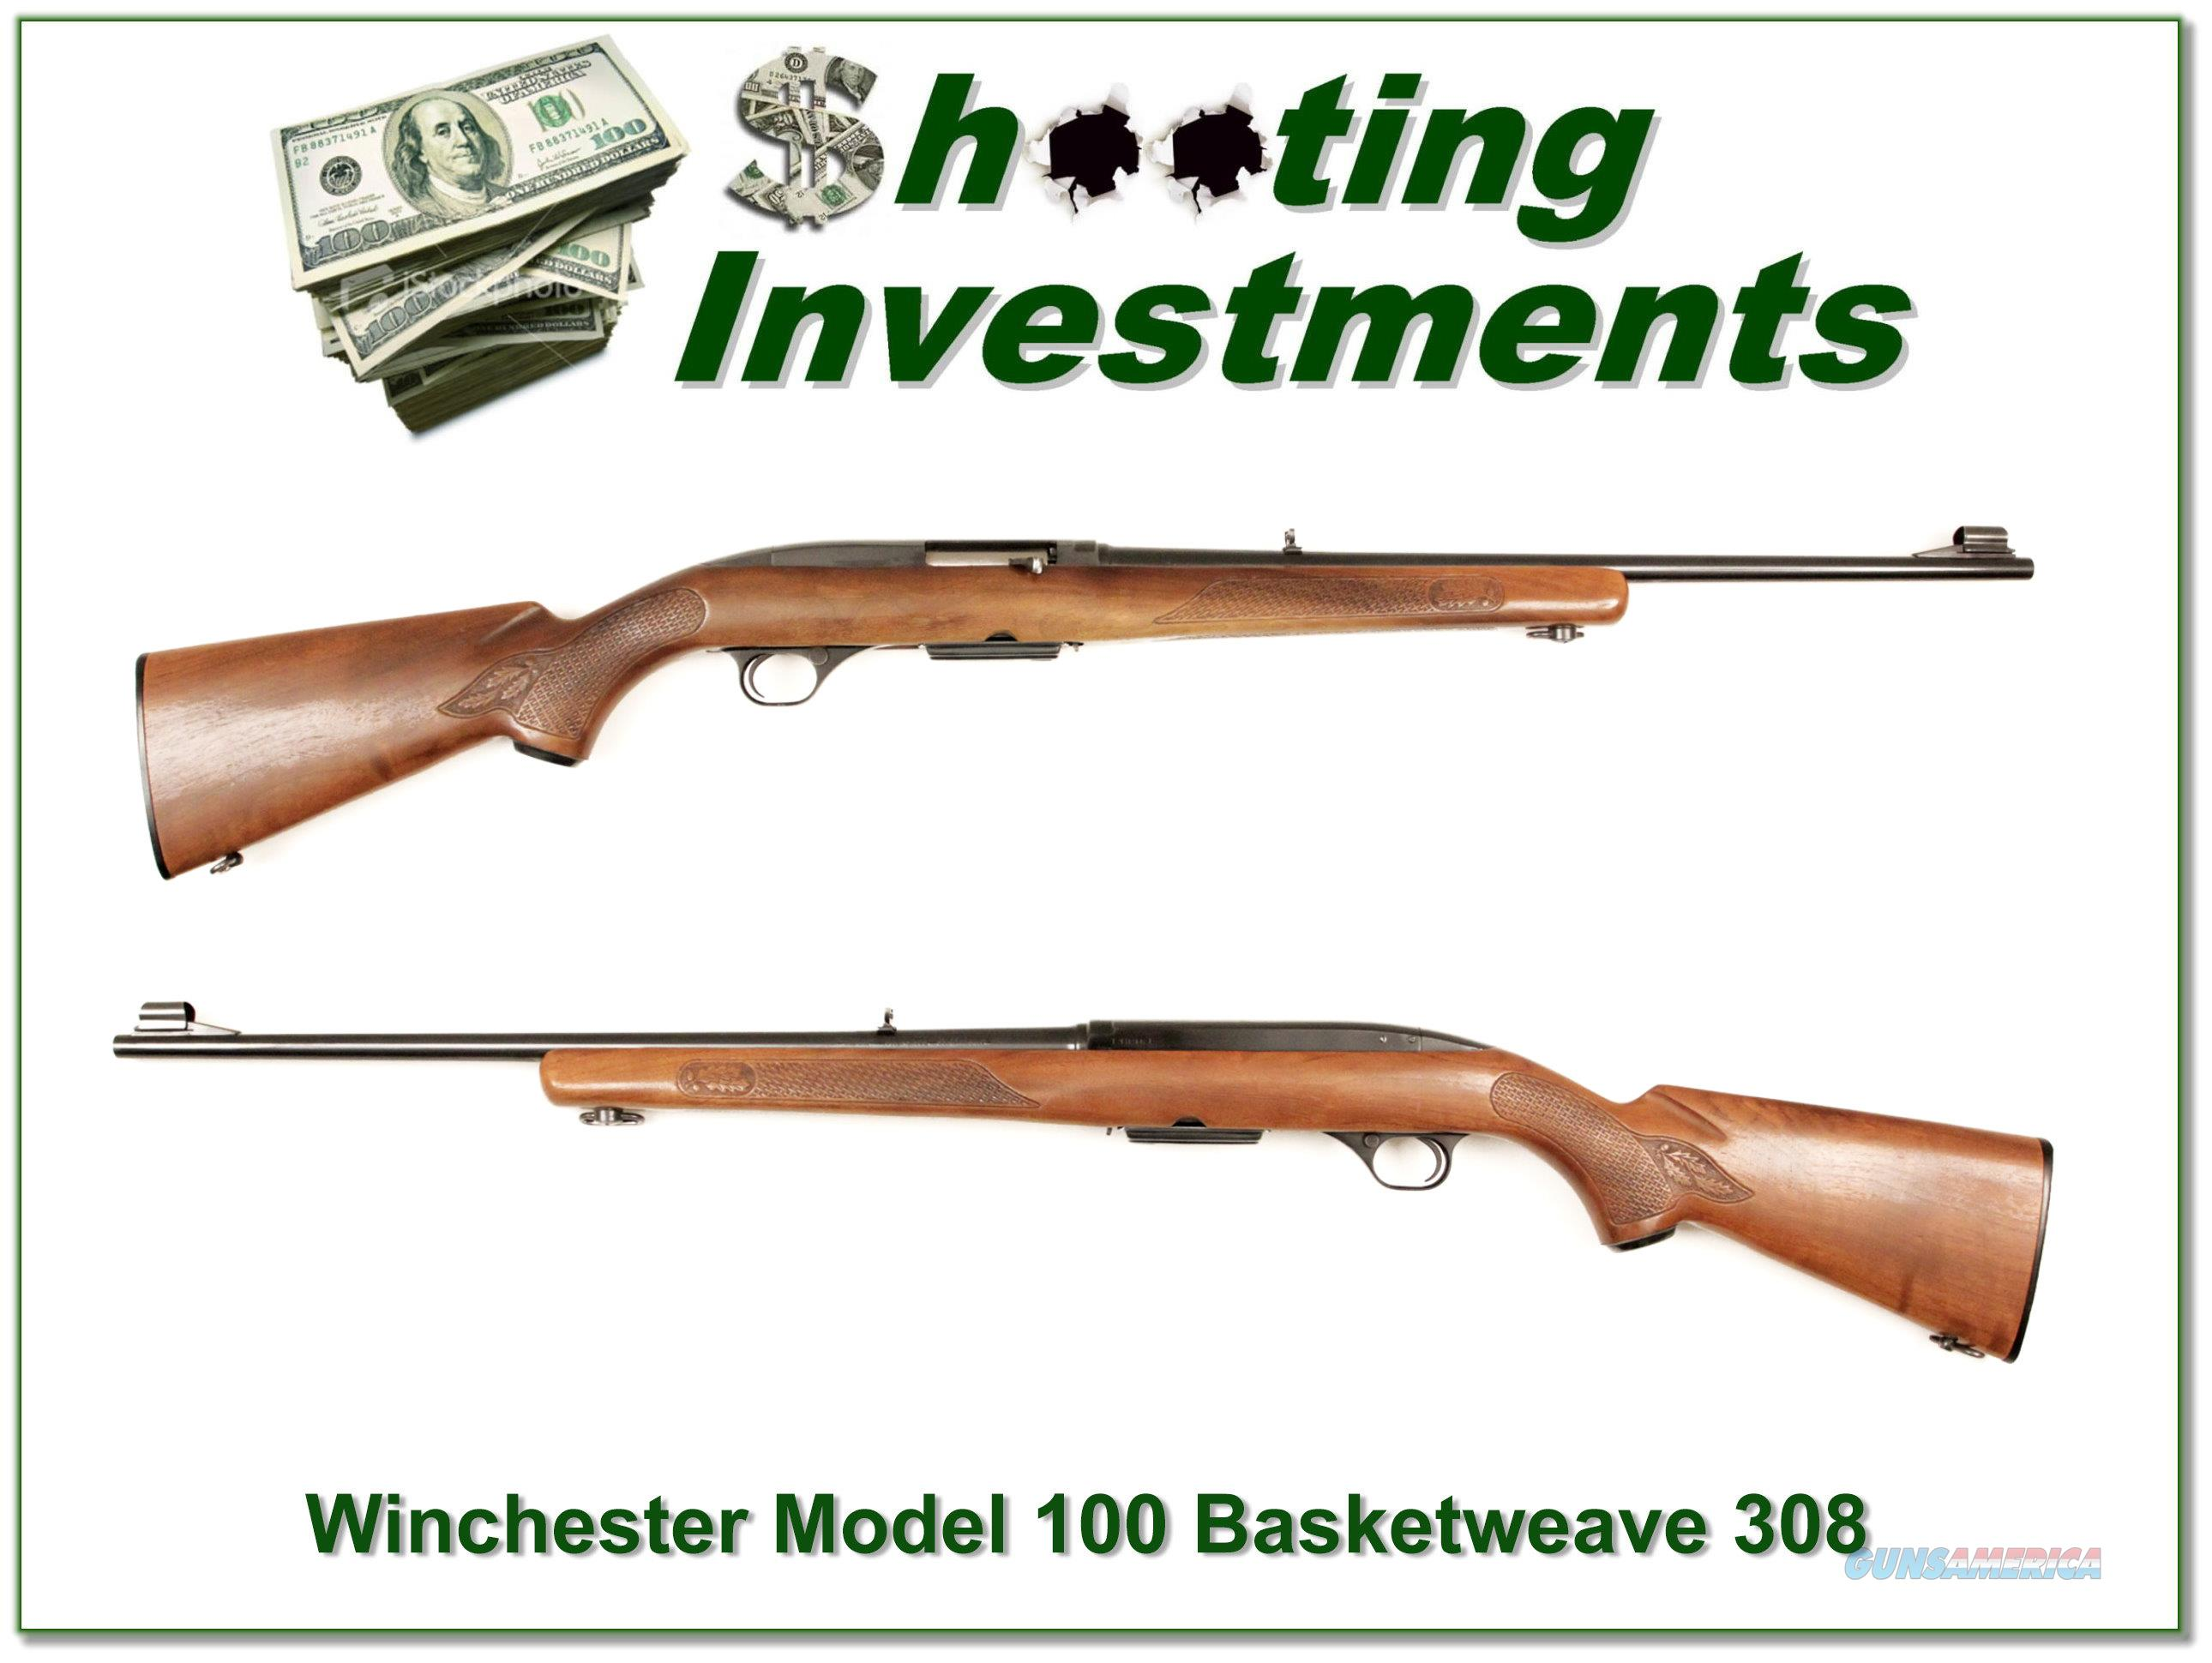 winchester model 100 308 basket weave exc cond for sale